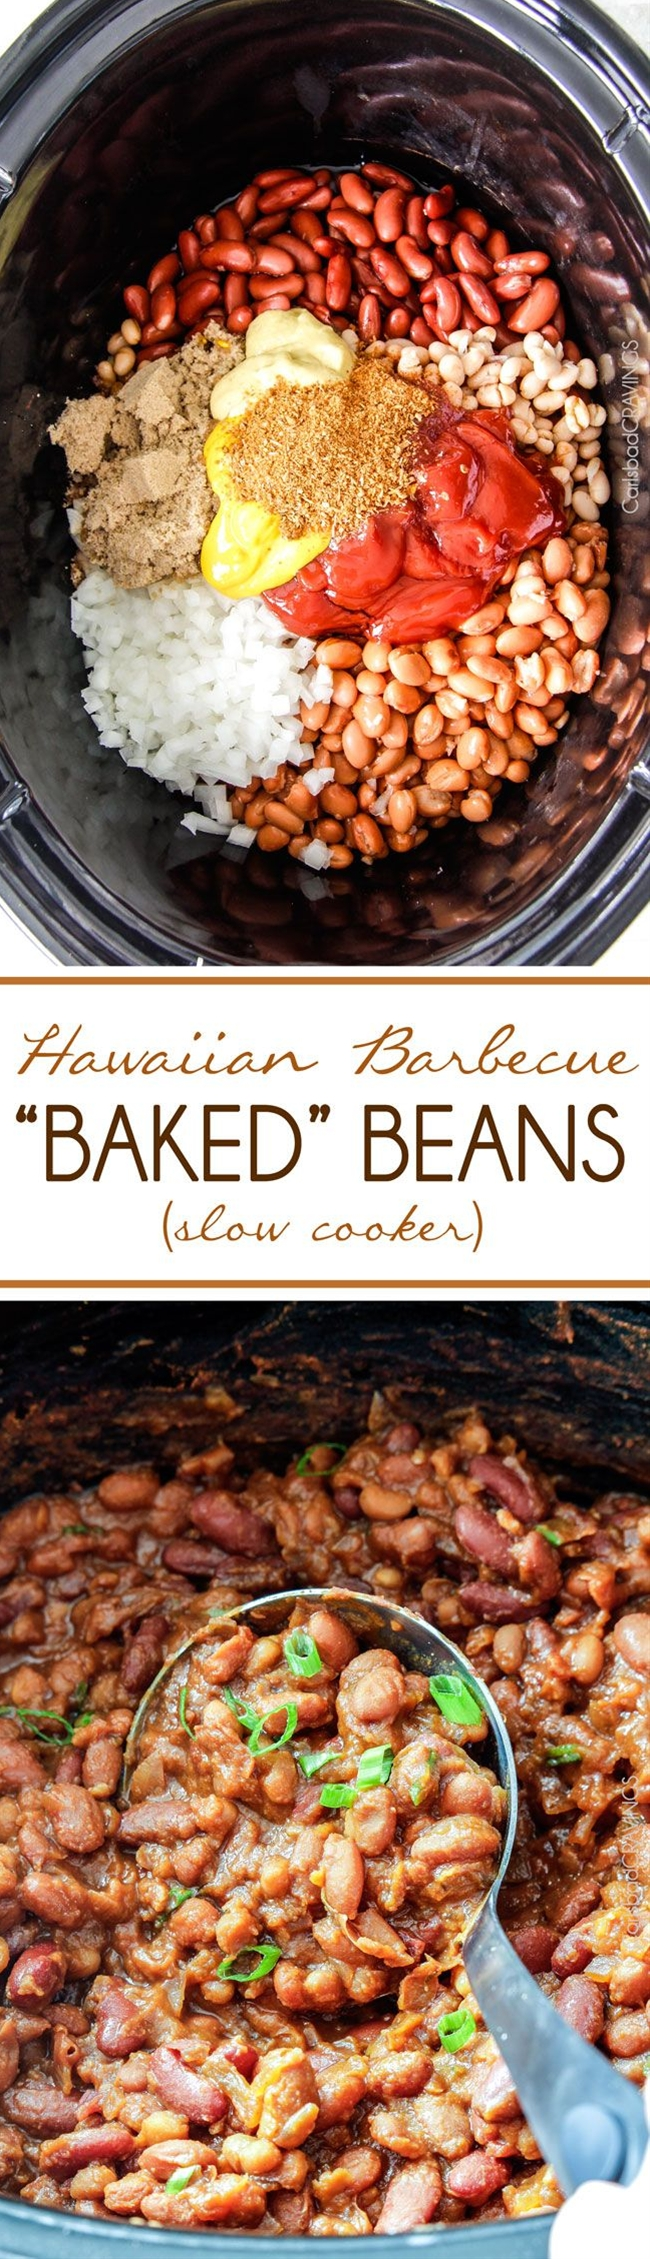 INGREDIENTS: Hawaiian Barbecue Baked Beans,  1 28 oz. can pinto beans, rinsed and drained,  1 15 oz. can white beans, rinsed and drained,  1 15 oz. can light kidney beans, rinsed and drained,  1/2 large sweet onion, diced,  3 garlic cloves, minced,  1/2 cup ketchup,  1/3 cup brown sugar, packed,  1/3 cup molasses,  2 tablespoons white vinegar,  2 tablespoons yellow mustard,  2 tablespoons Dijon mustard,  1 tablespoon Worcestershire sauce,  1 6 oz. can pineapple juice mixed with 1 teaspoon cornstarch,  1 tablespoon Cajun spices.